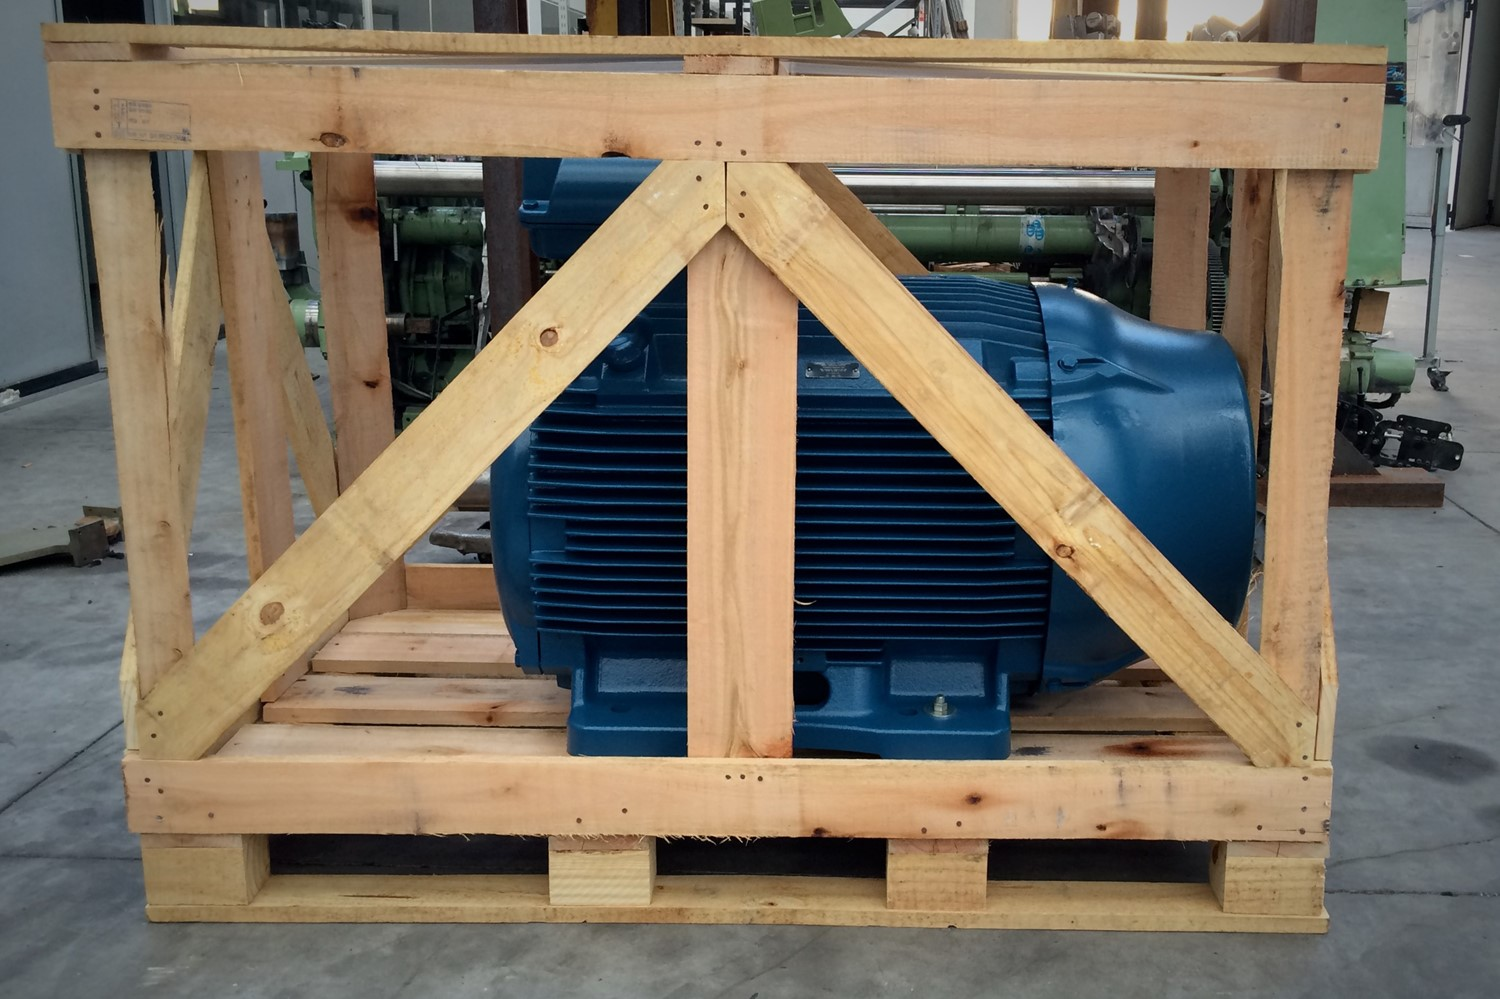 8.shipment_indutrial motor_CHIPWOOD PLANT